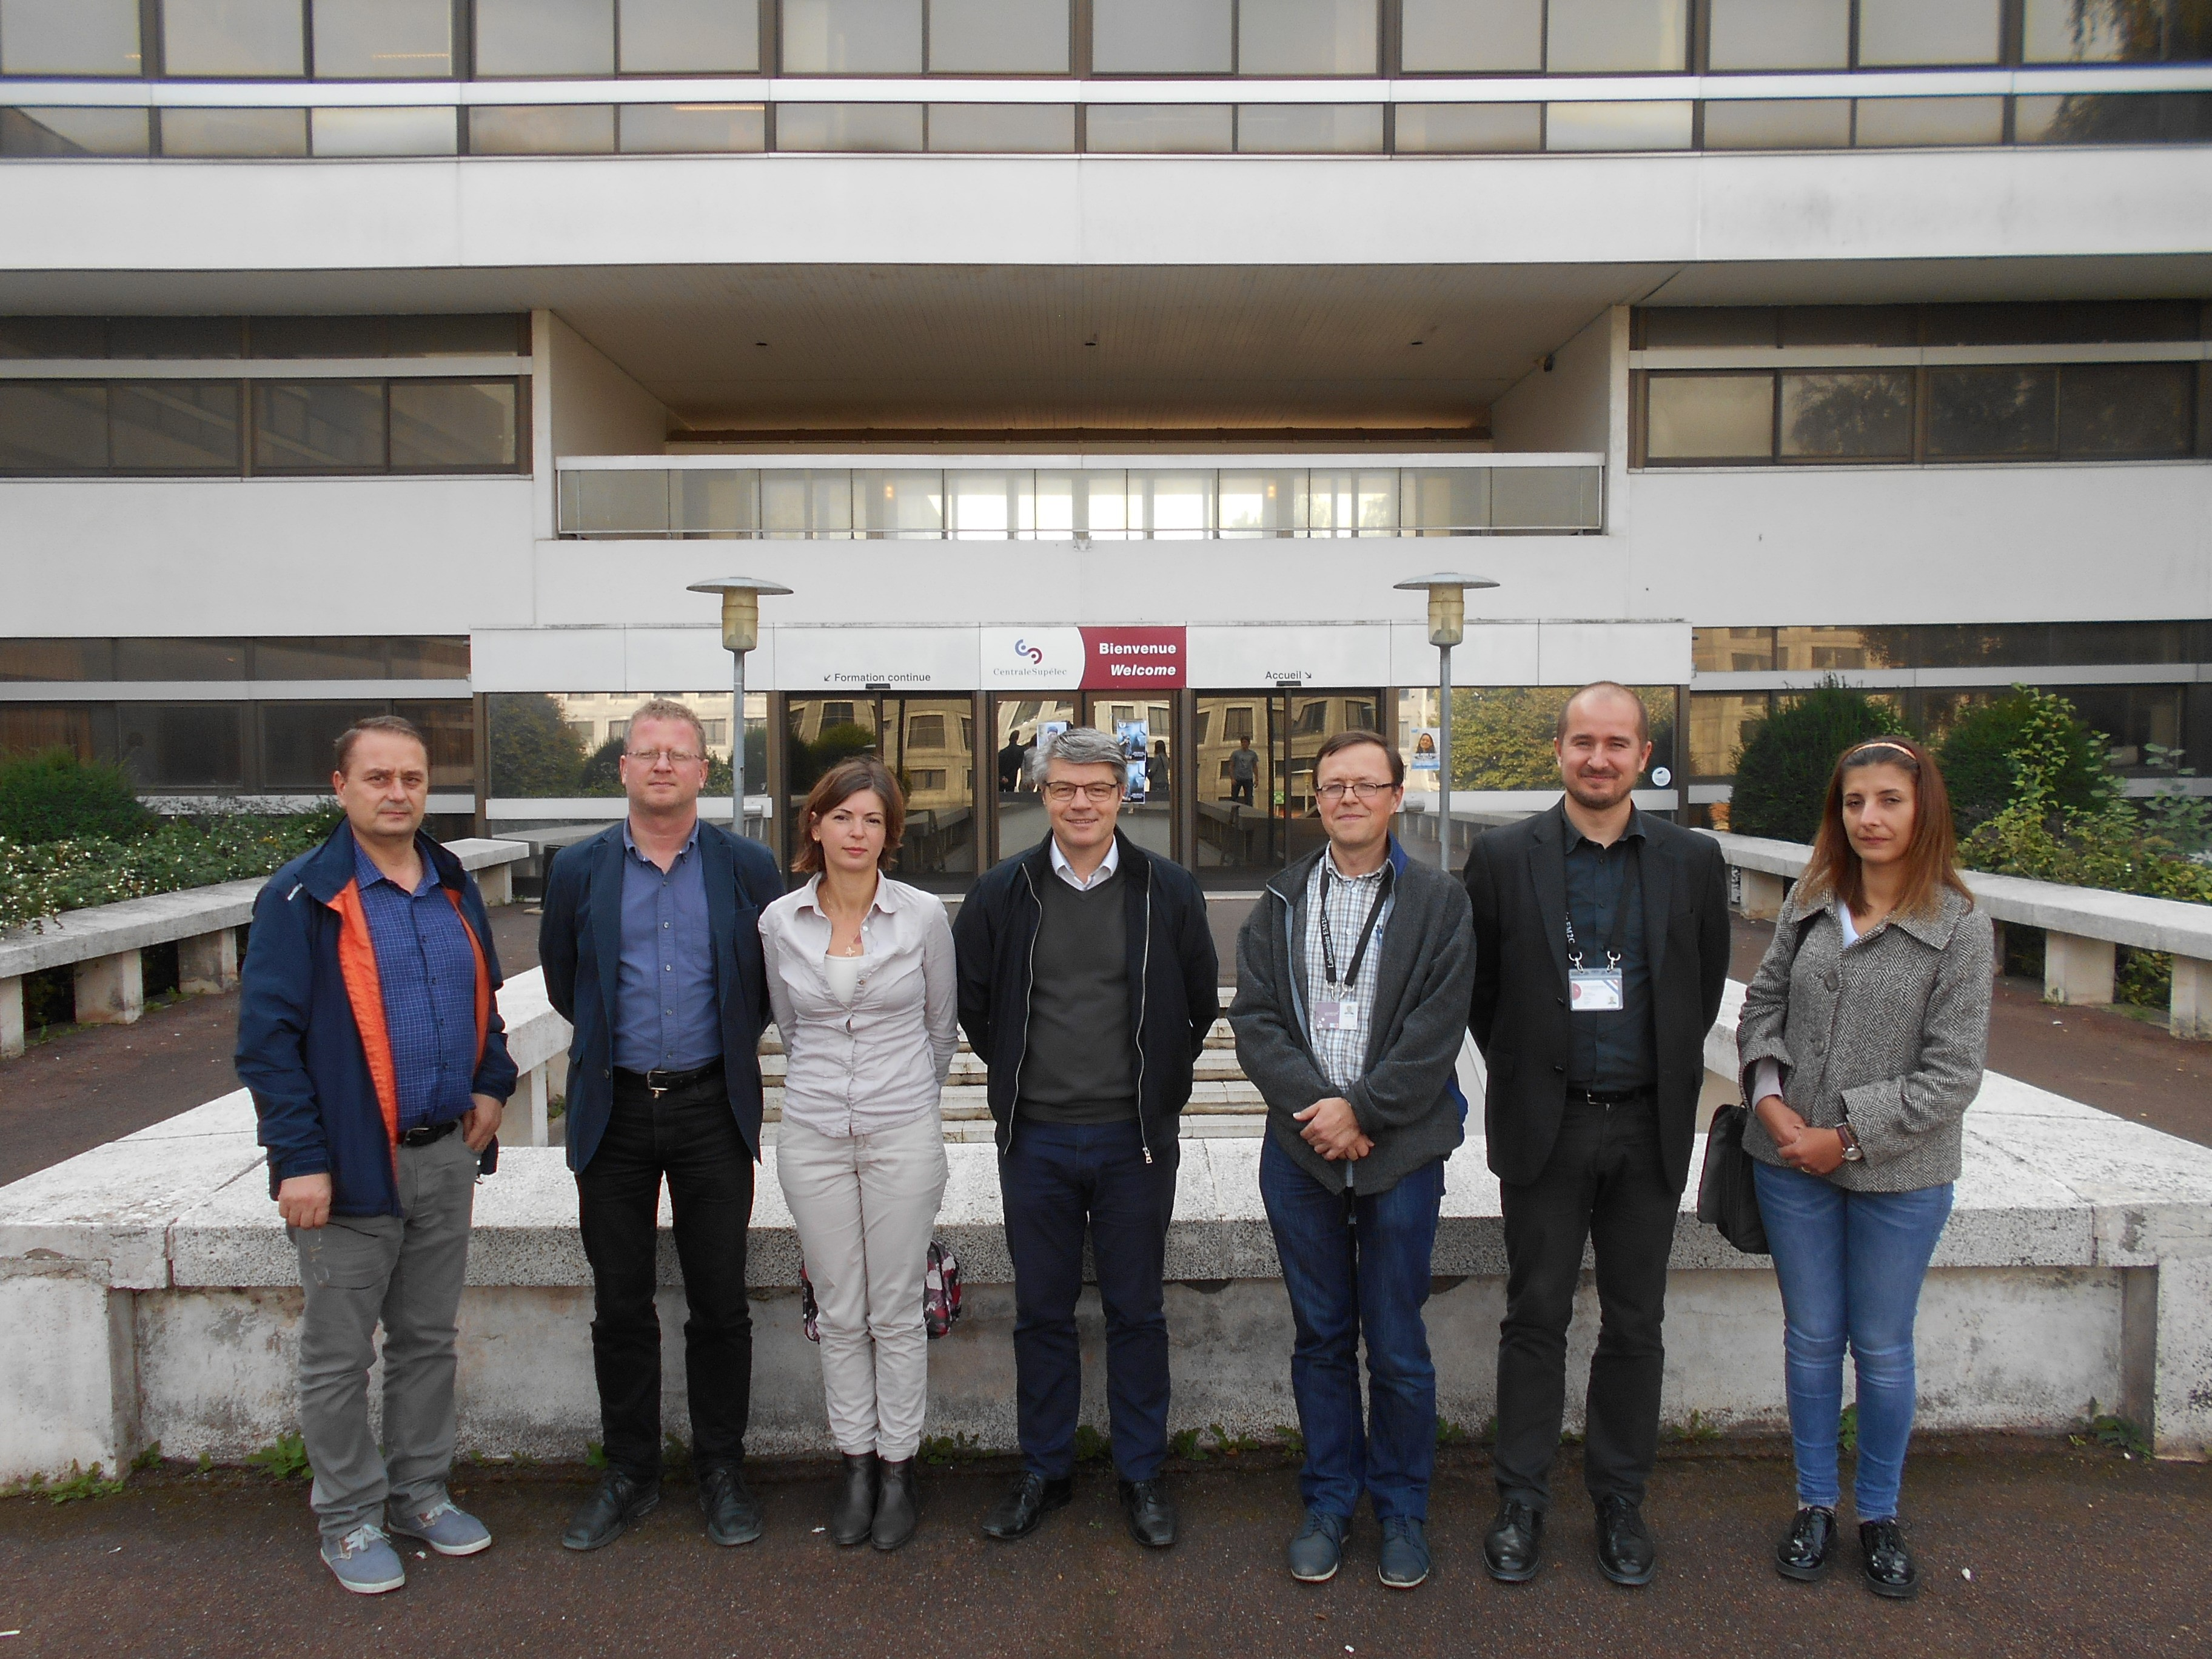 A group photo with the participants at the second meeting of Team 3 (16-17 October 2017). From left: Nicolaie PAVEL, Erik BECKERT, Catalina Alice BRANDUS, Geoffrey DEARDEN, Laurent ZIMMER, Gabi-Daniel STANCU and Gabriela CROITORU.(04c. Team 3-2_Paris_16-17.10.'17.JPG)